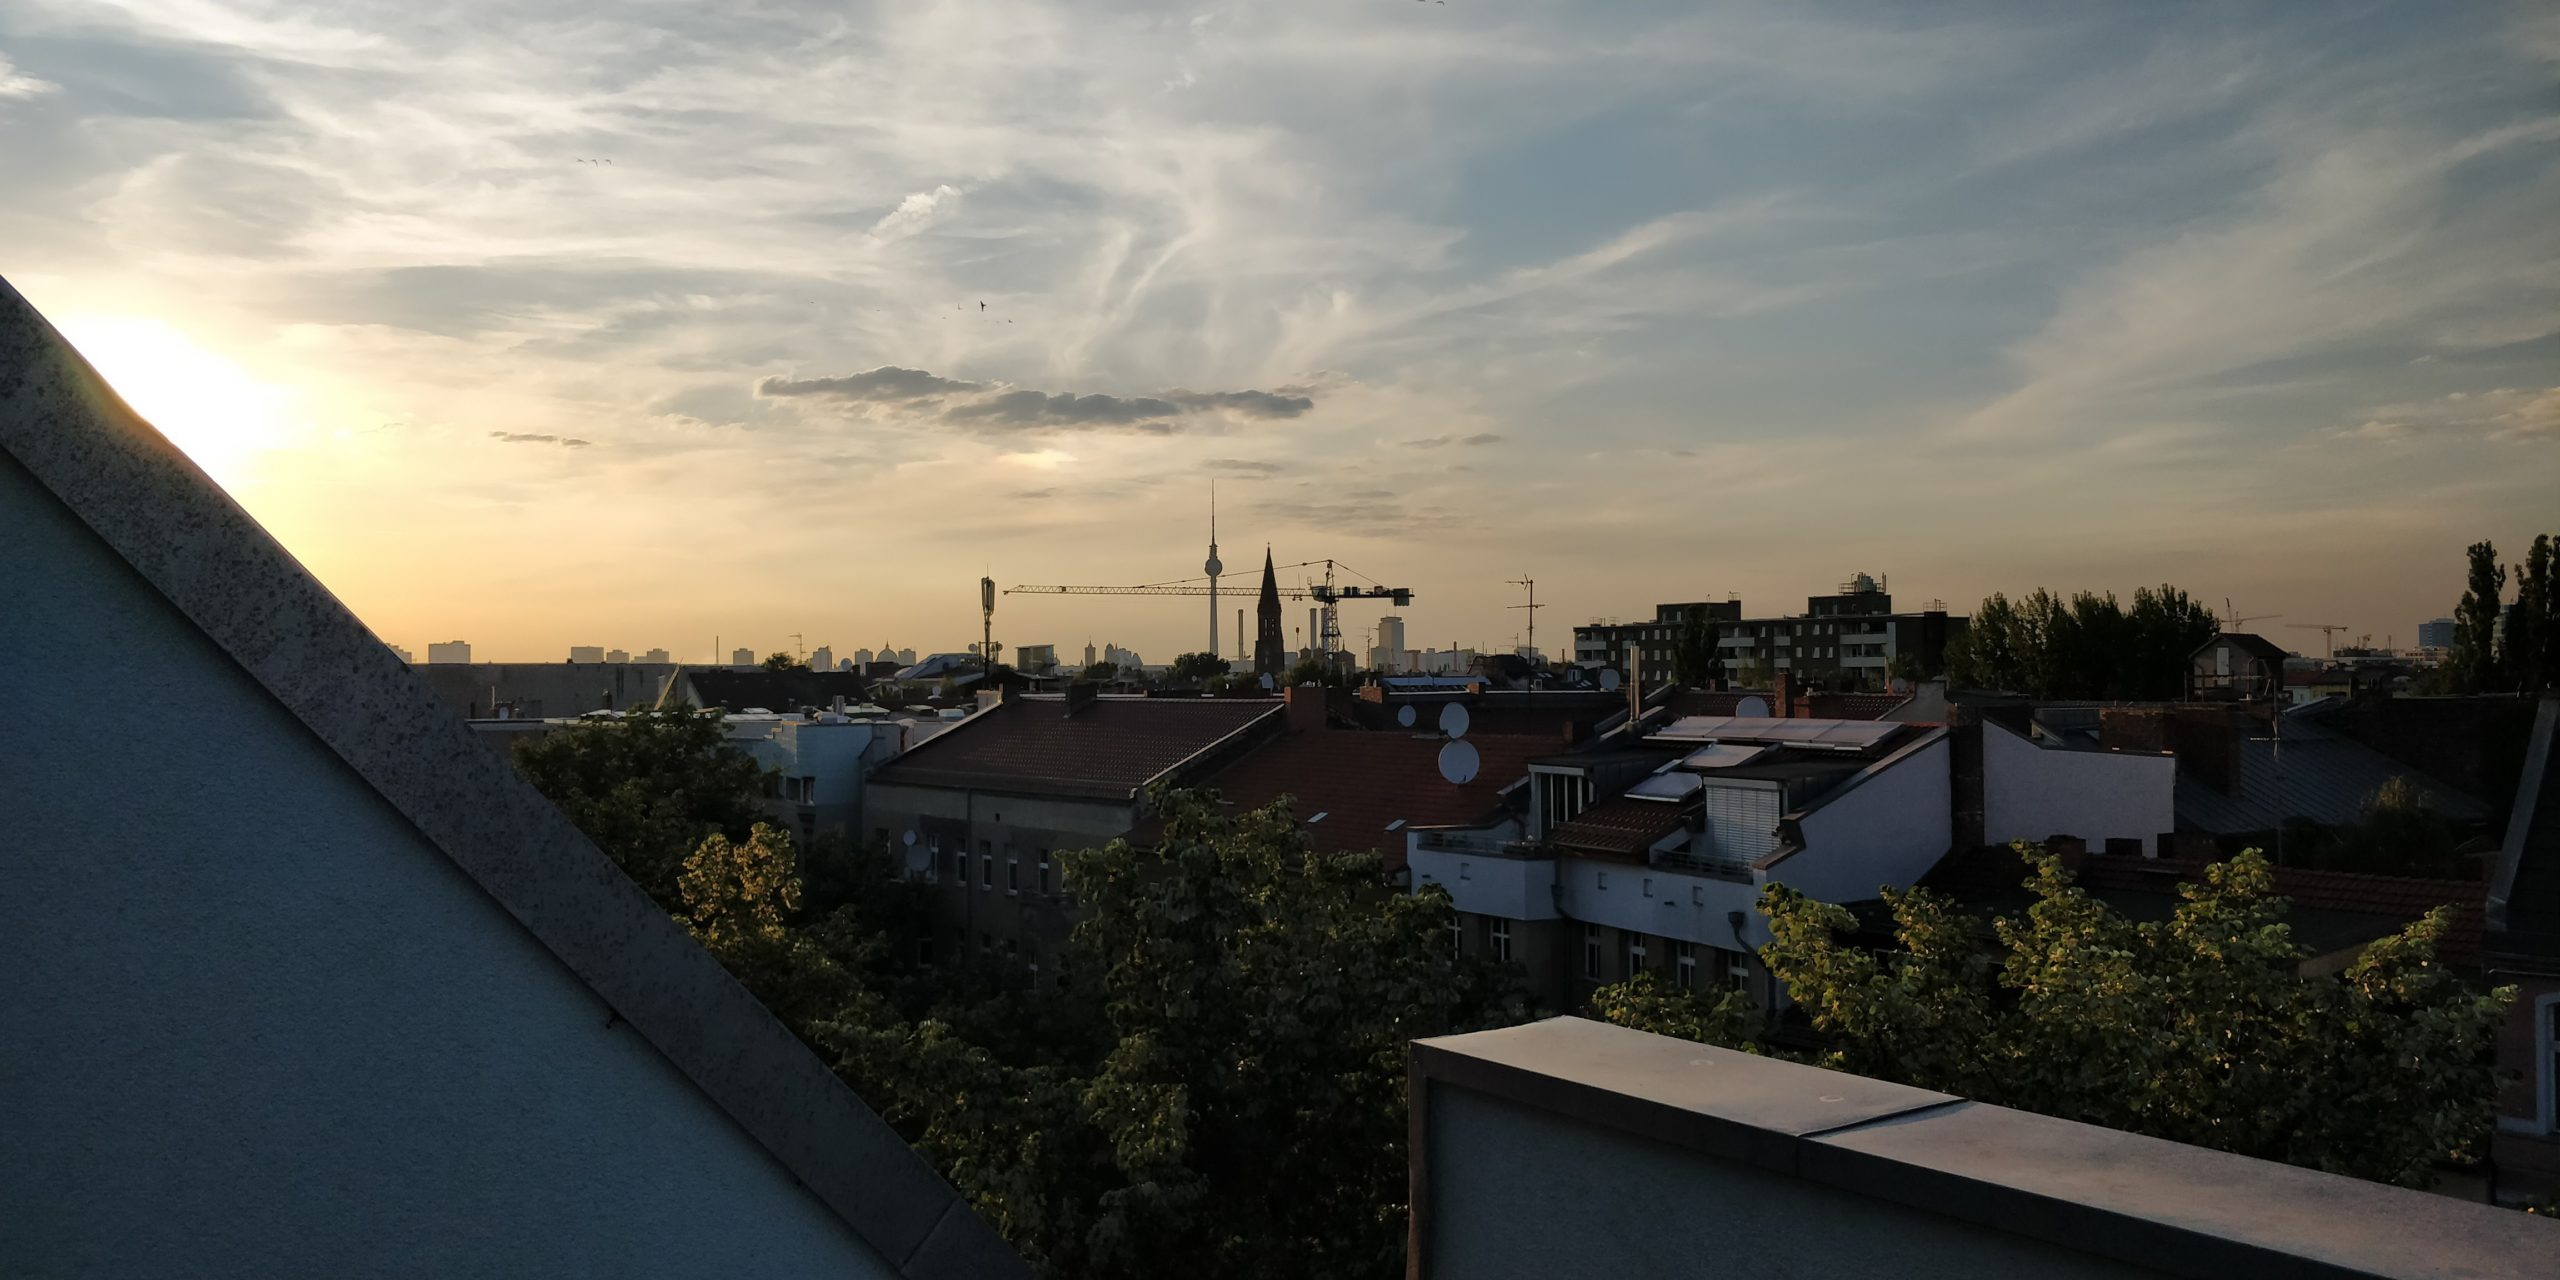 Sunset over rooftops of Berlin